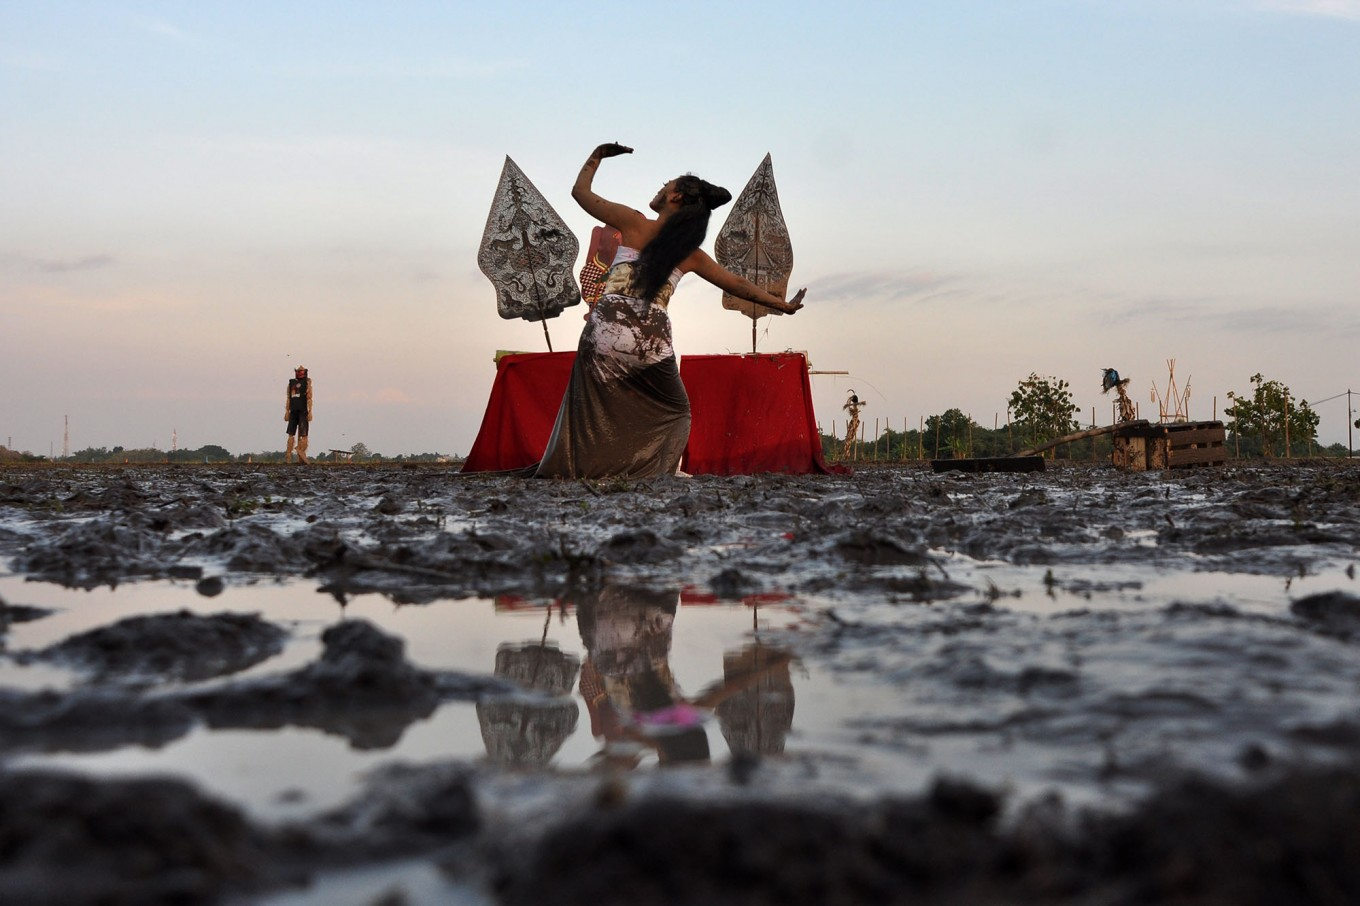 Lintang performs Seni Jantur, a collaborative dance, using the paddy field as a stage to depict the fertility of Delanggu village, which comes from Mount Merapi and Si Gedang water springs. JP/Magnus Hendratmo